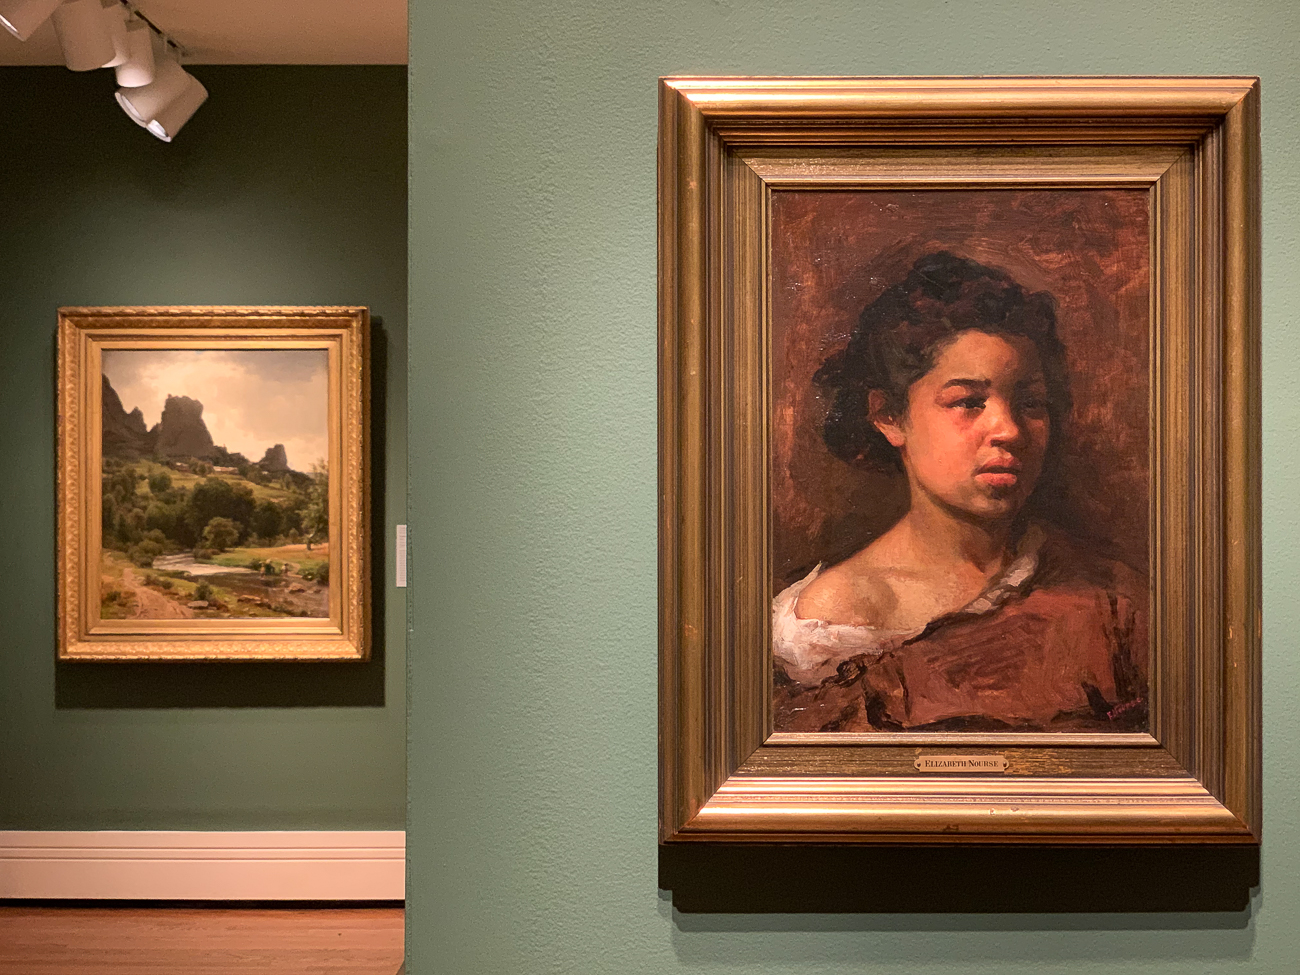 Painting on the right by Elizabeth Nourse circa early 1880s / Image: Phil Armstrong, Cincinnati Refined // Published: 10.4.20